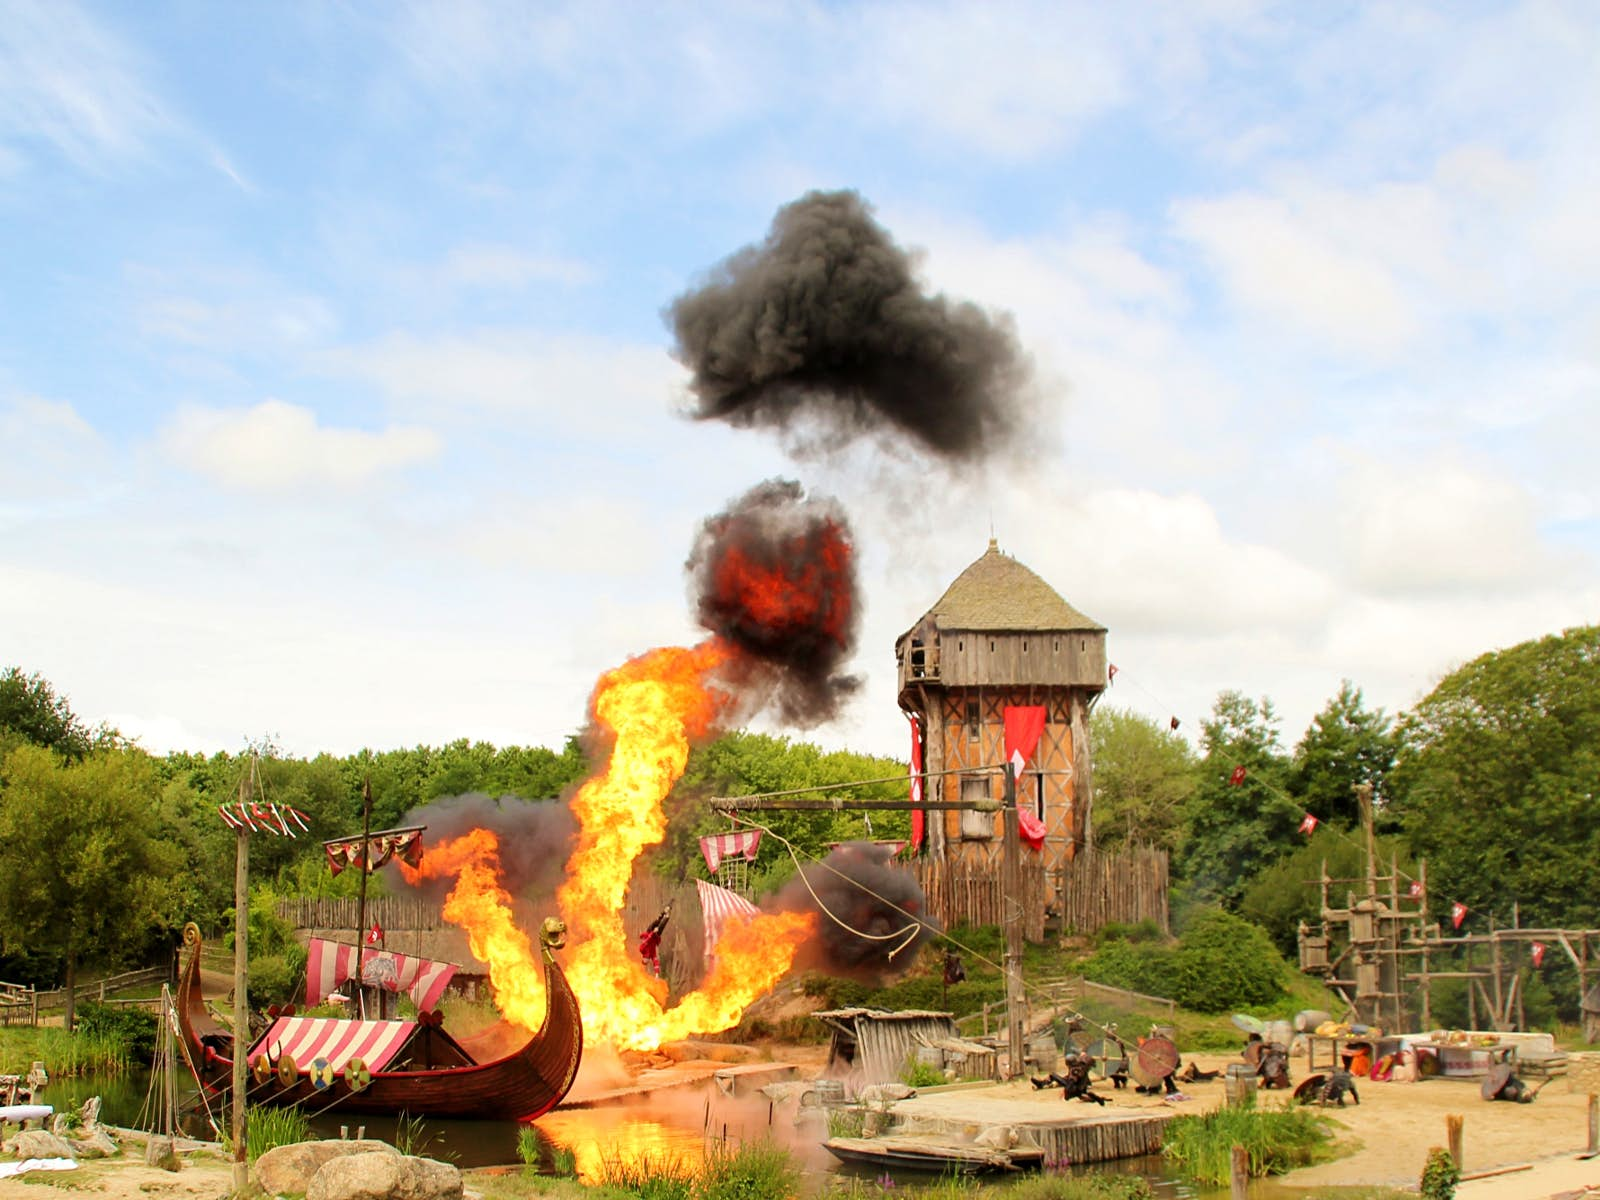 Disney alternatives - A viking re-enactment show at Puy du Fou shows a viking boat bursting into flames next to a wooden tower